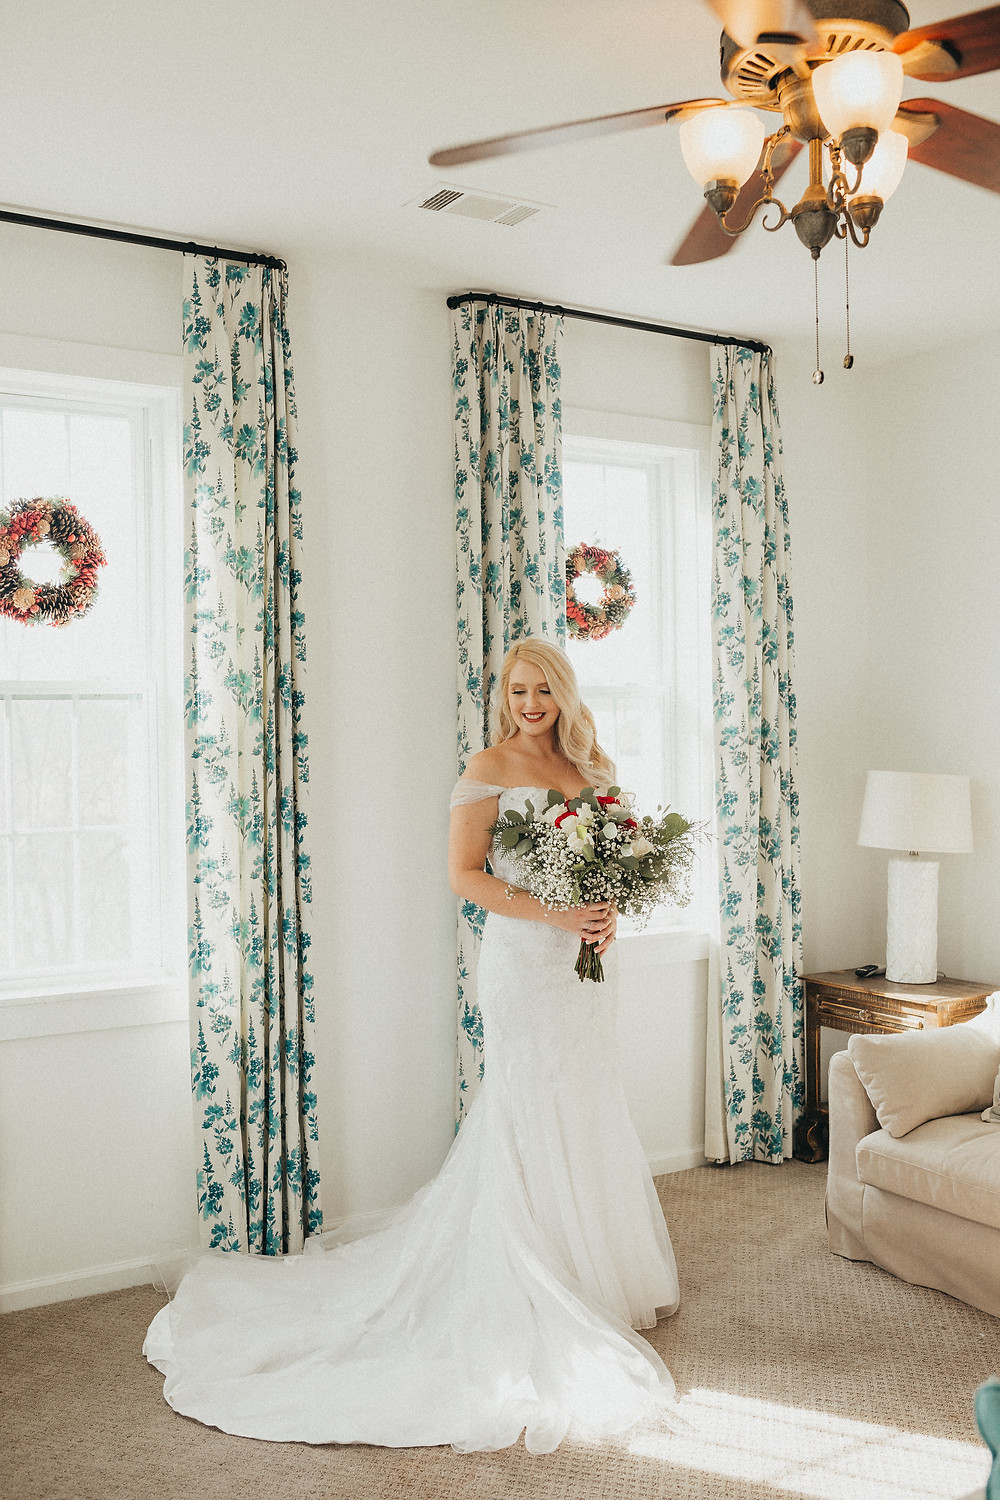 bride smiling down and holding bouquet